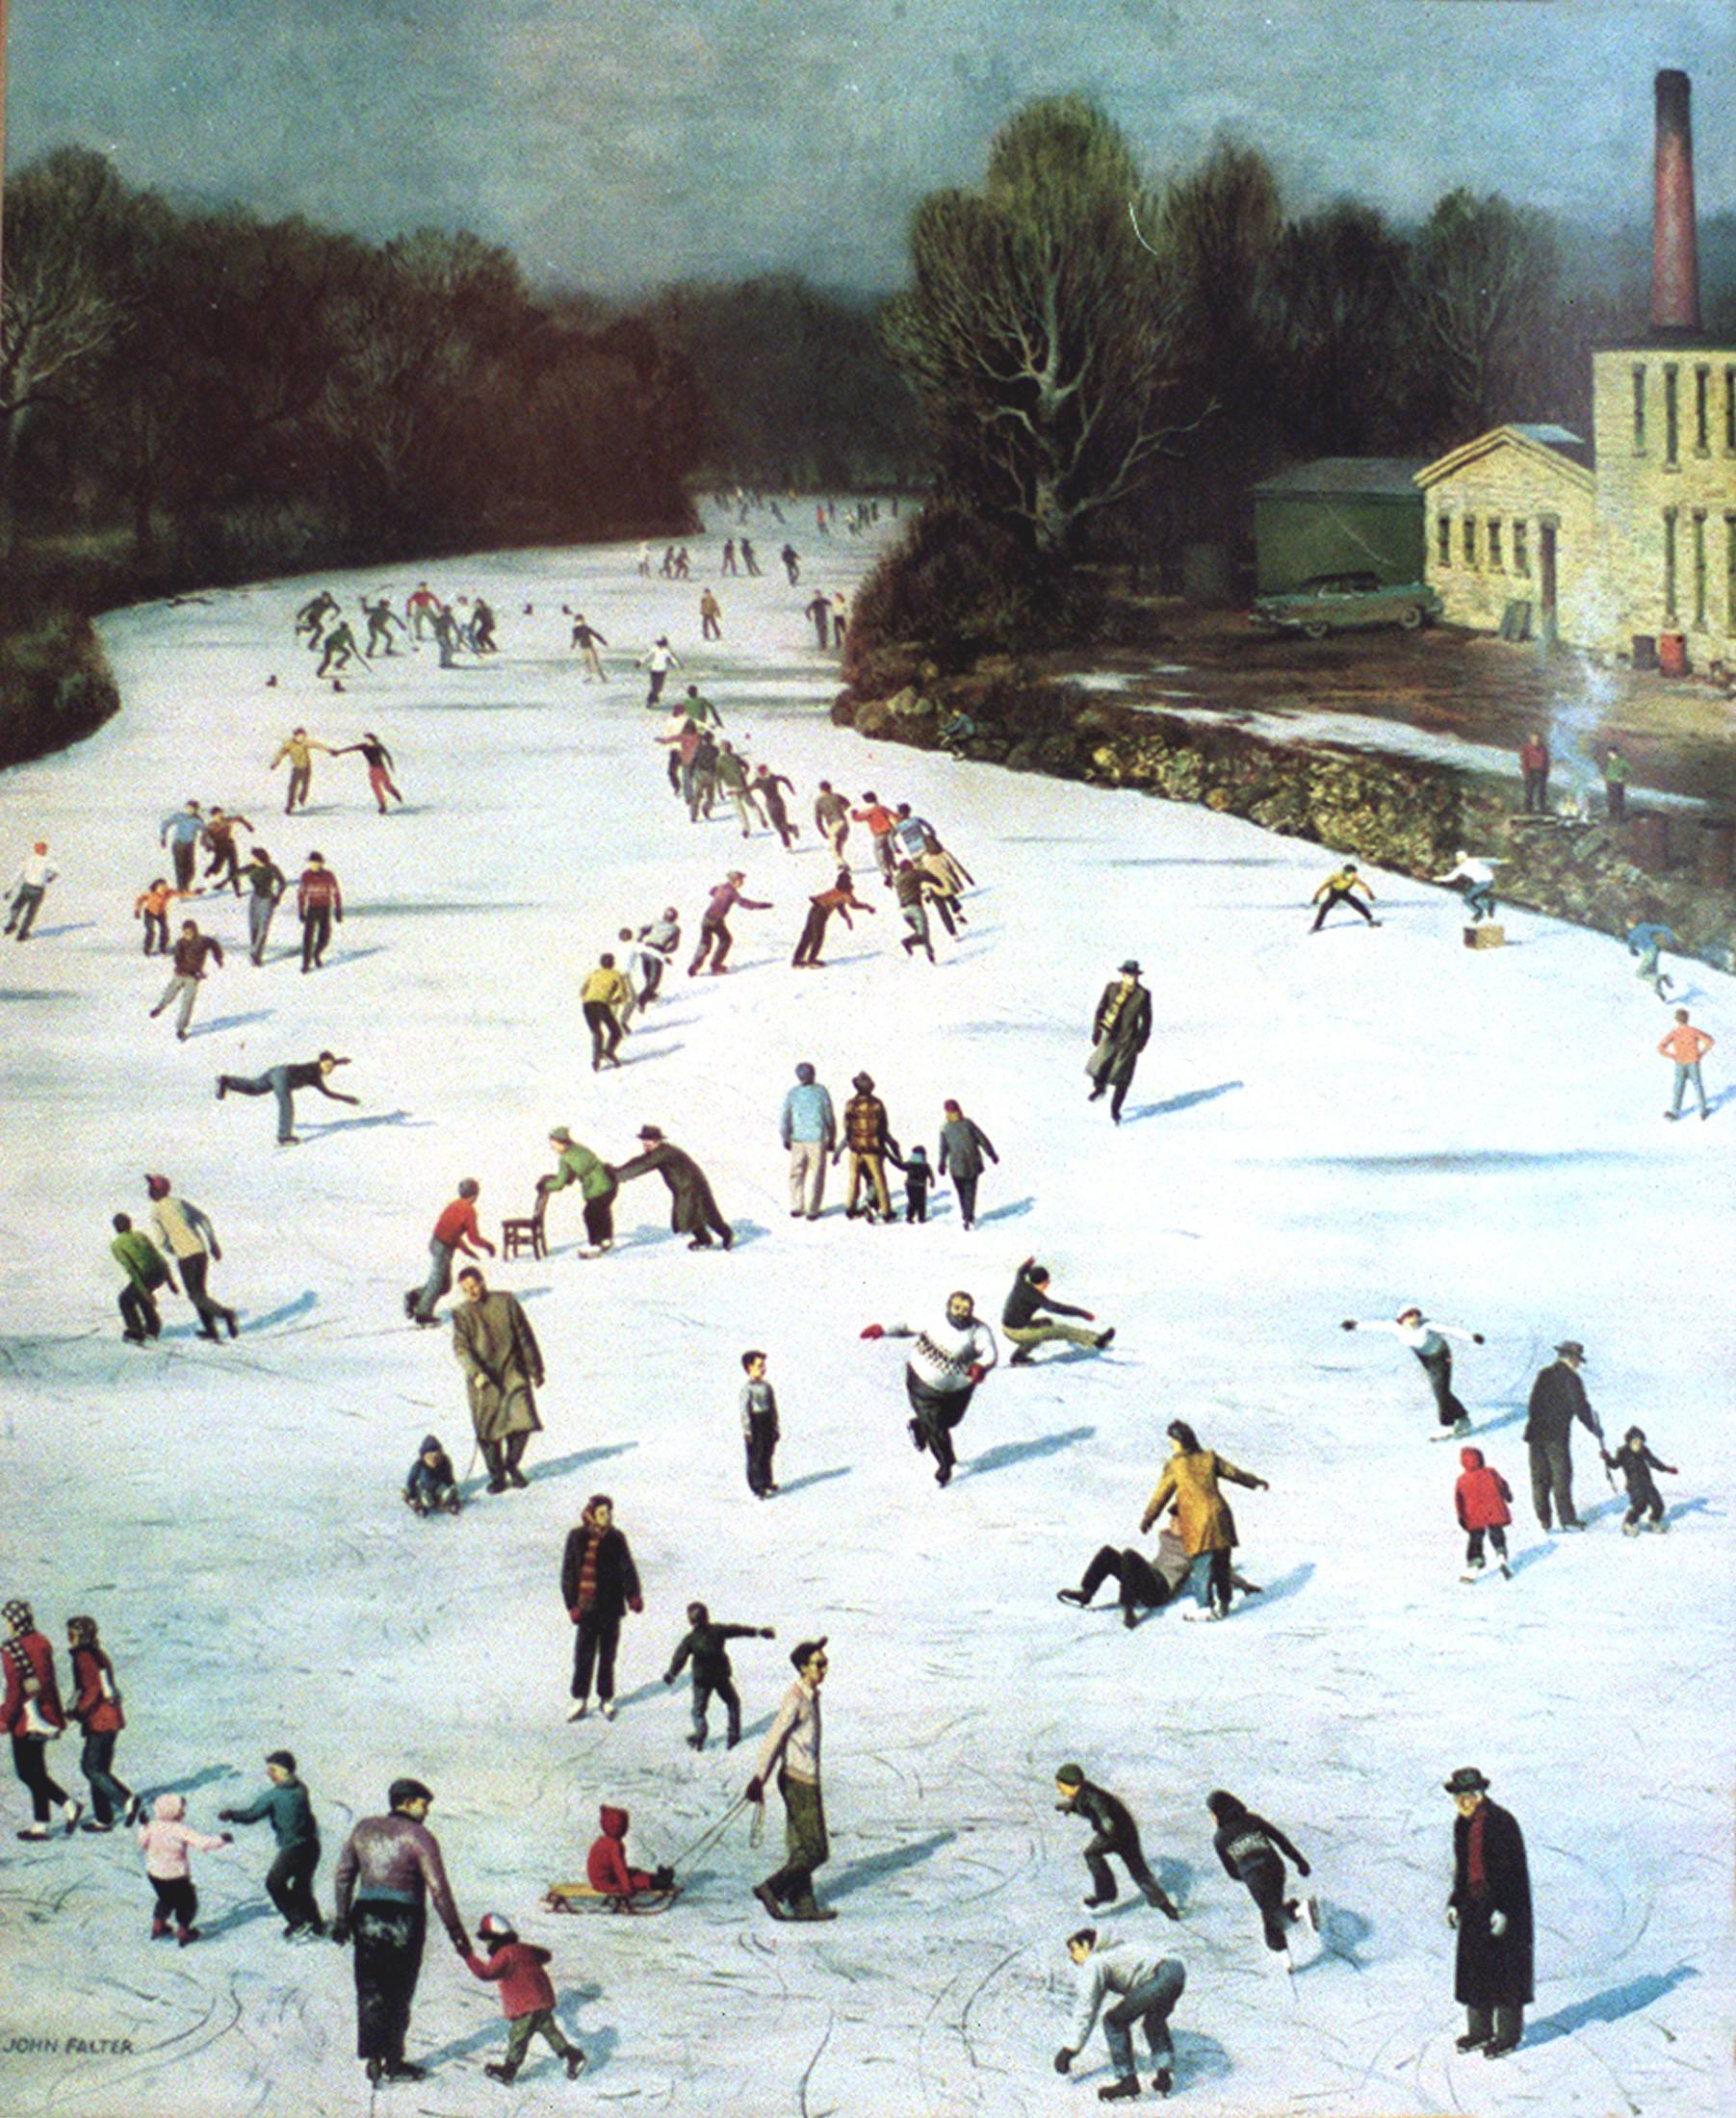 This painting of skaters on the Fox River in Batavia by John Falter appeared on the cover of the Saturday Evening Post in 1958.